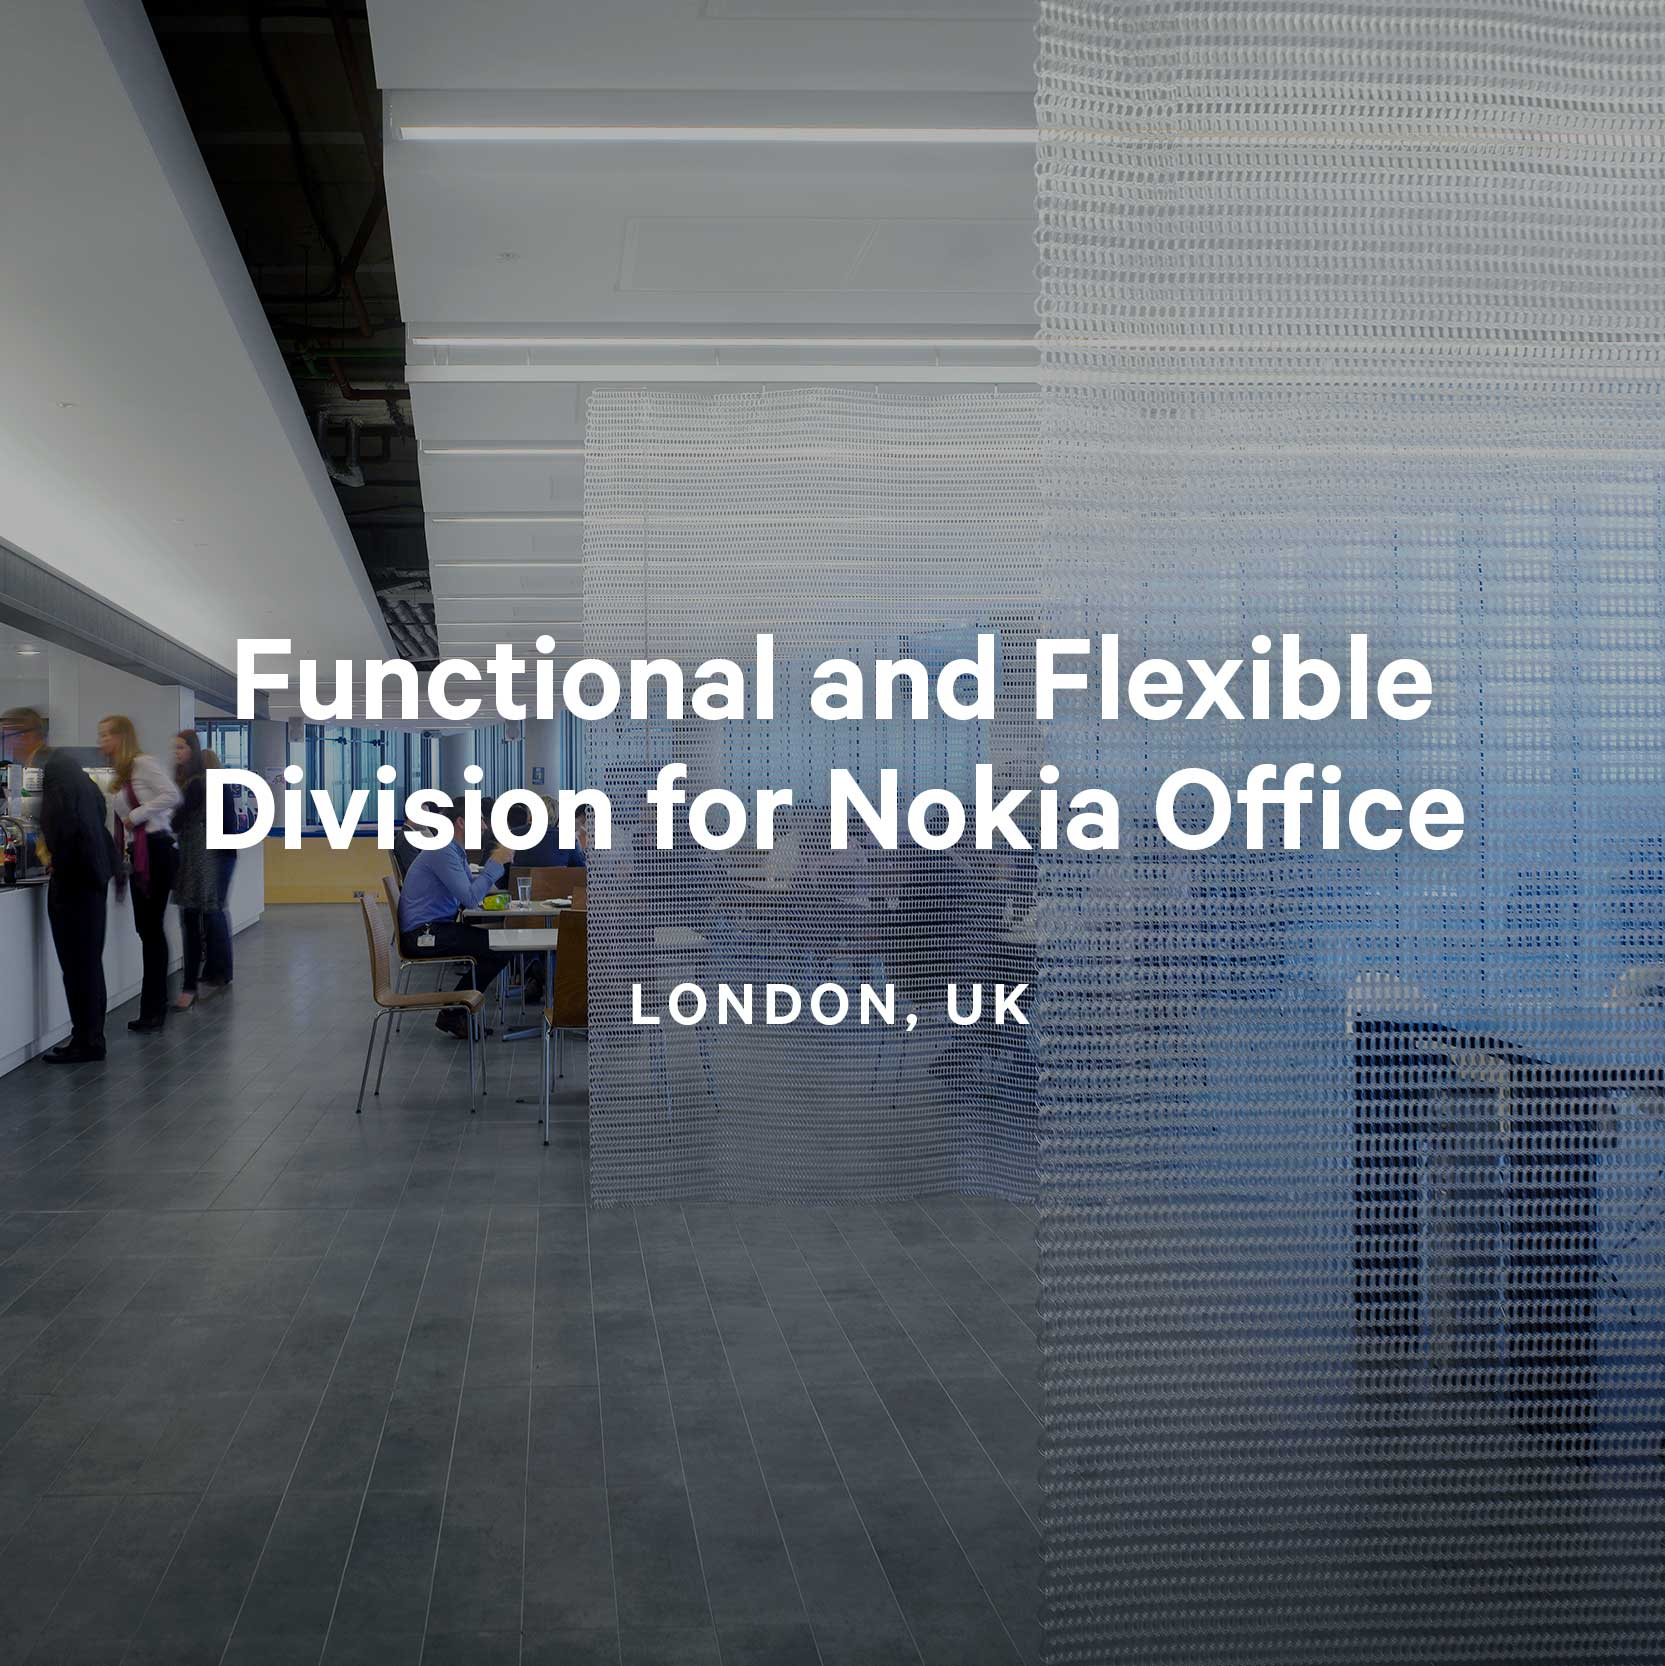 Functional and Flexible Division for Nokia Office